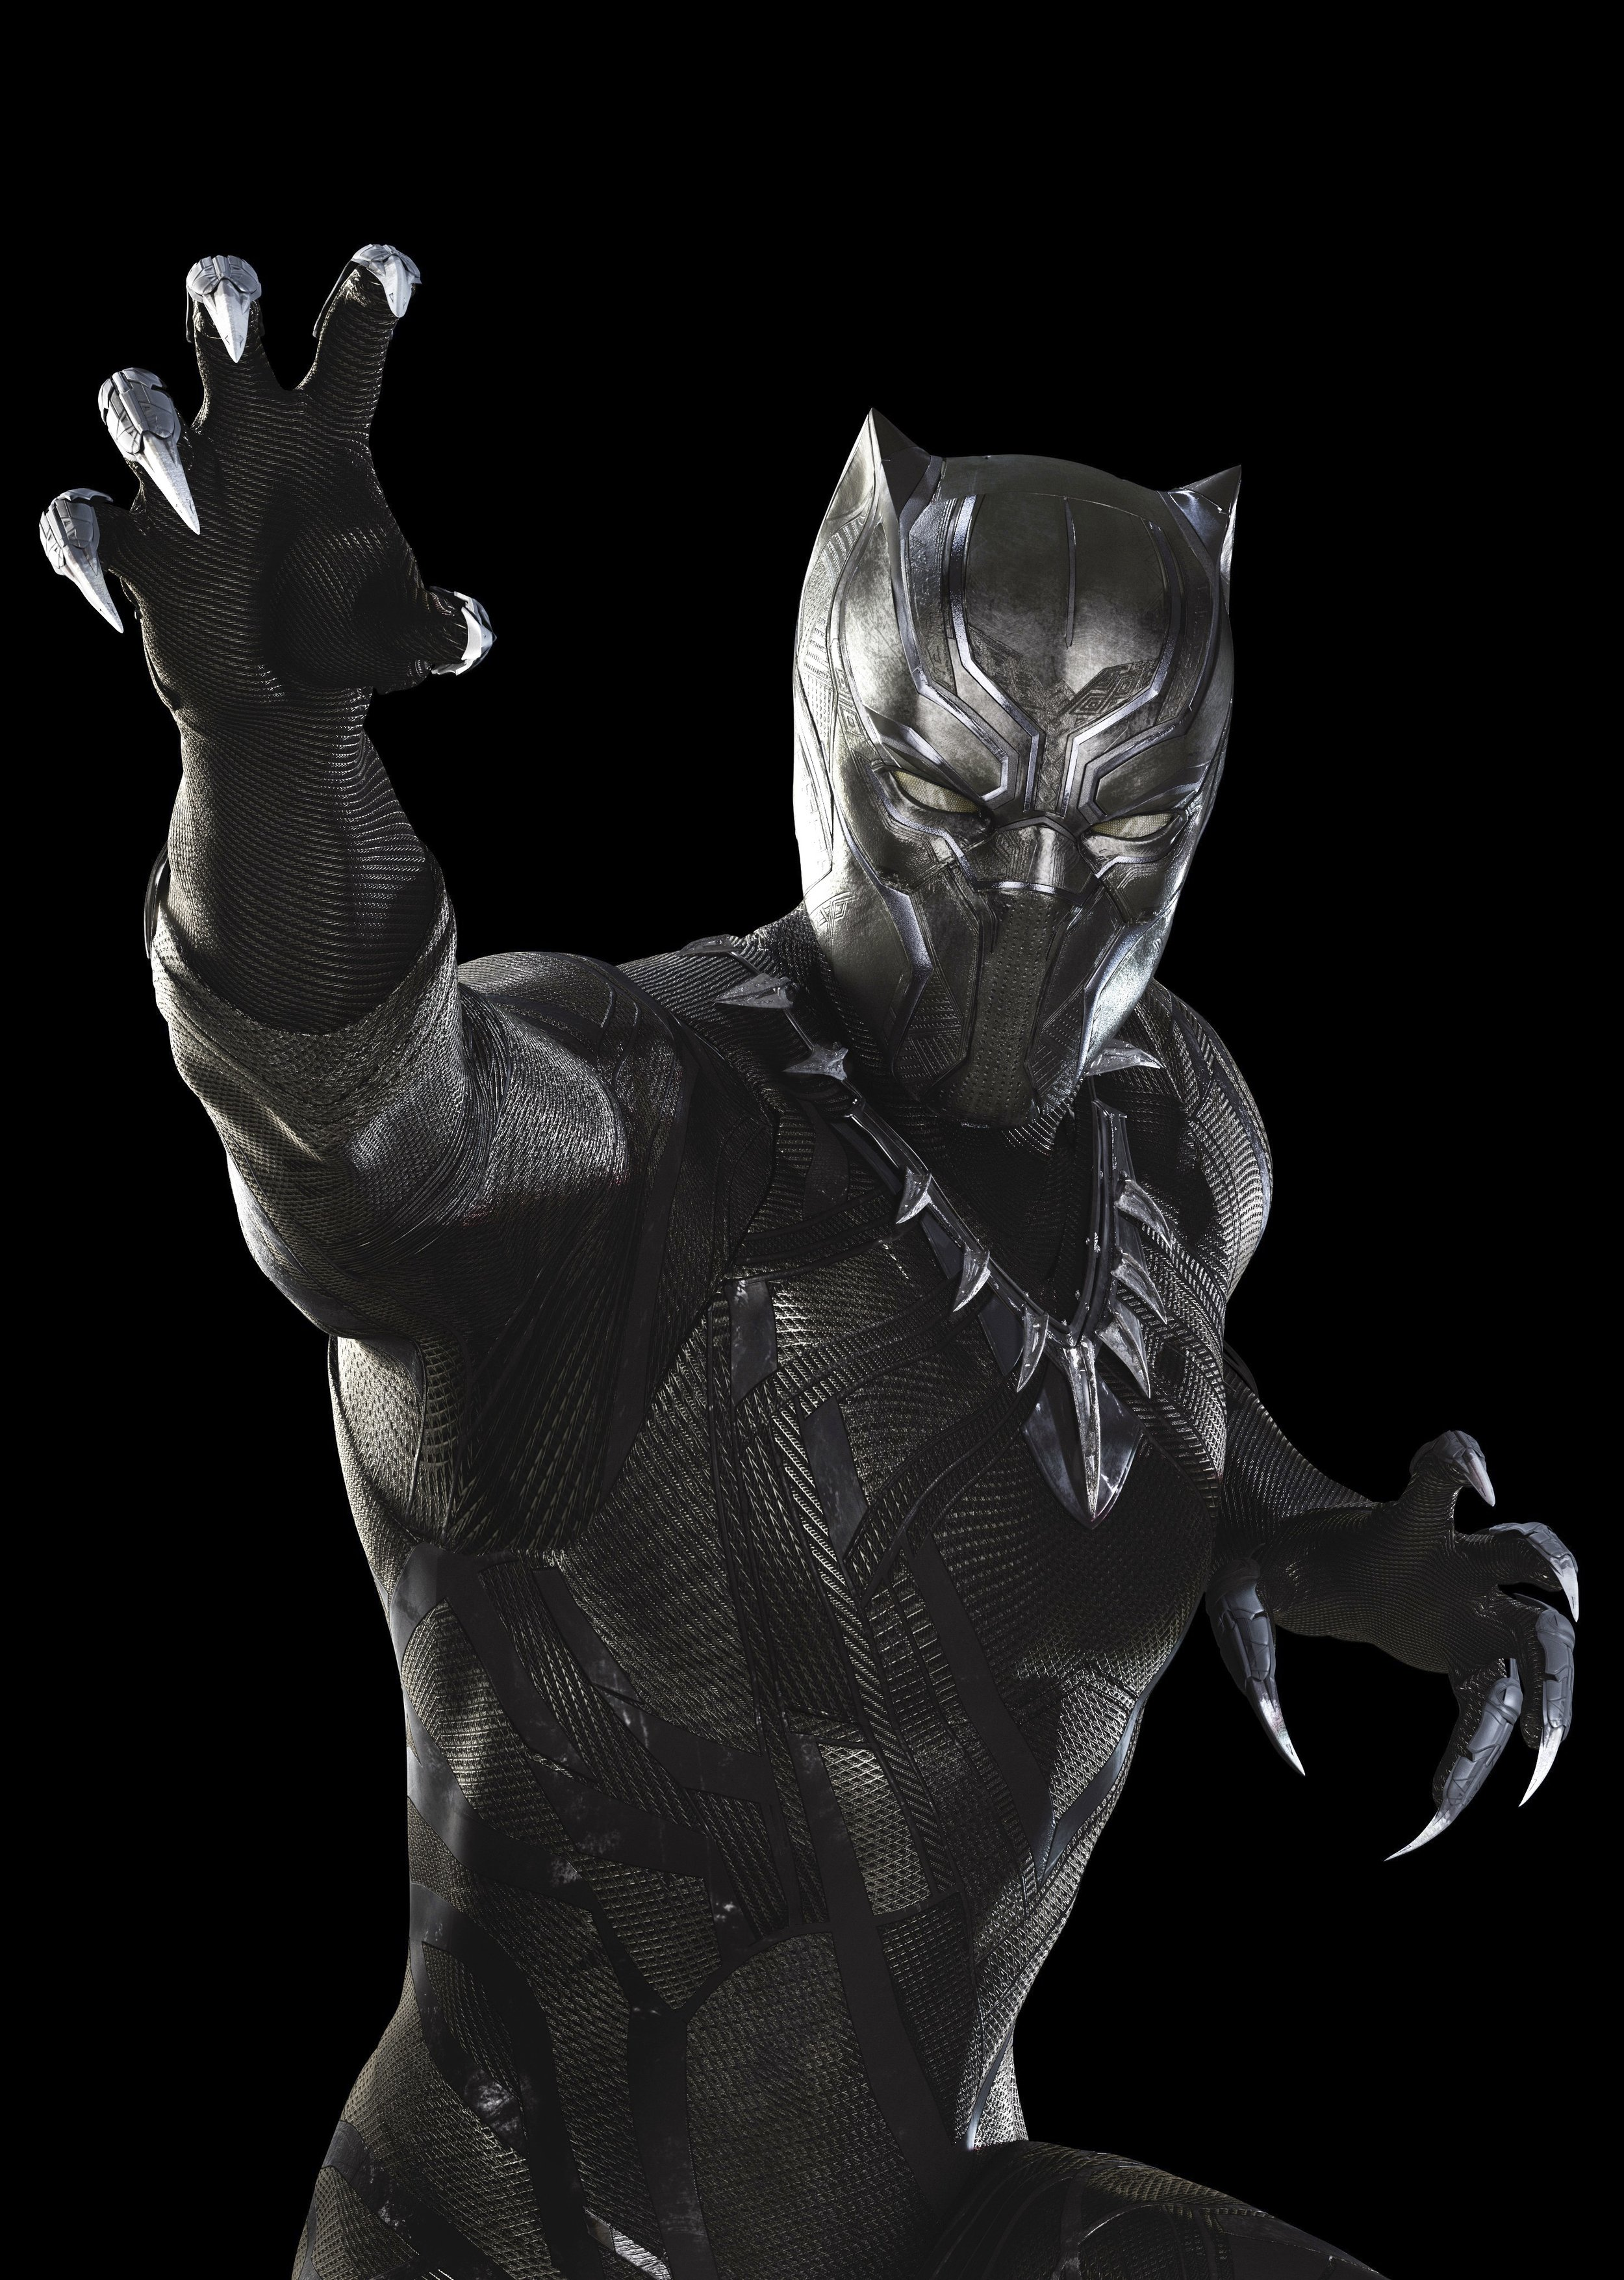 Black Panther, played by Chadwick Boseman